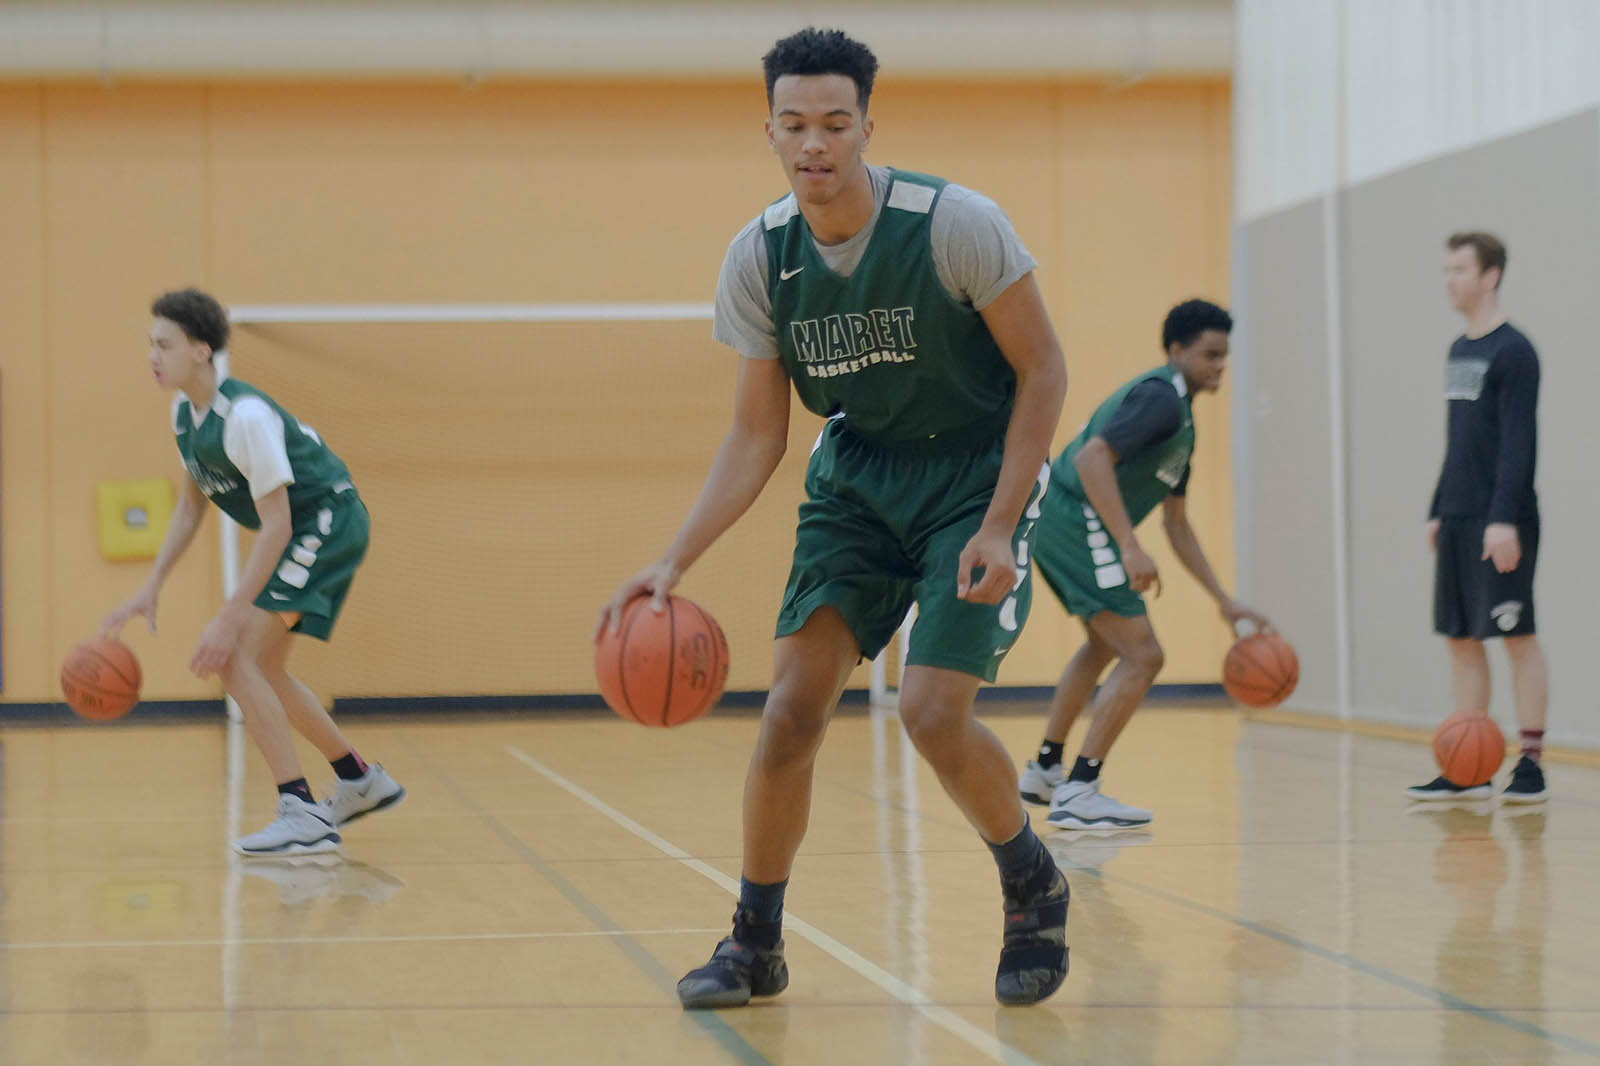 Maret Boys Basketball Featured in the New York Times